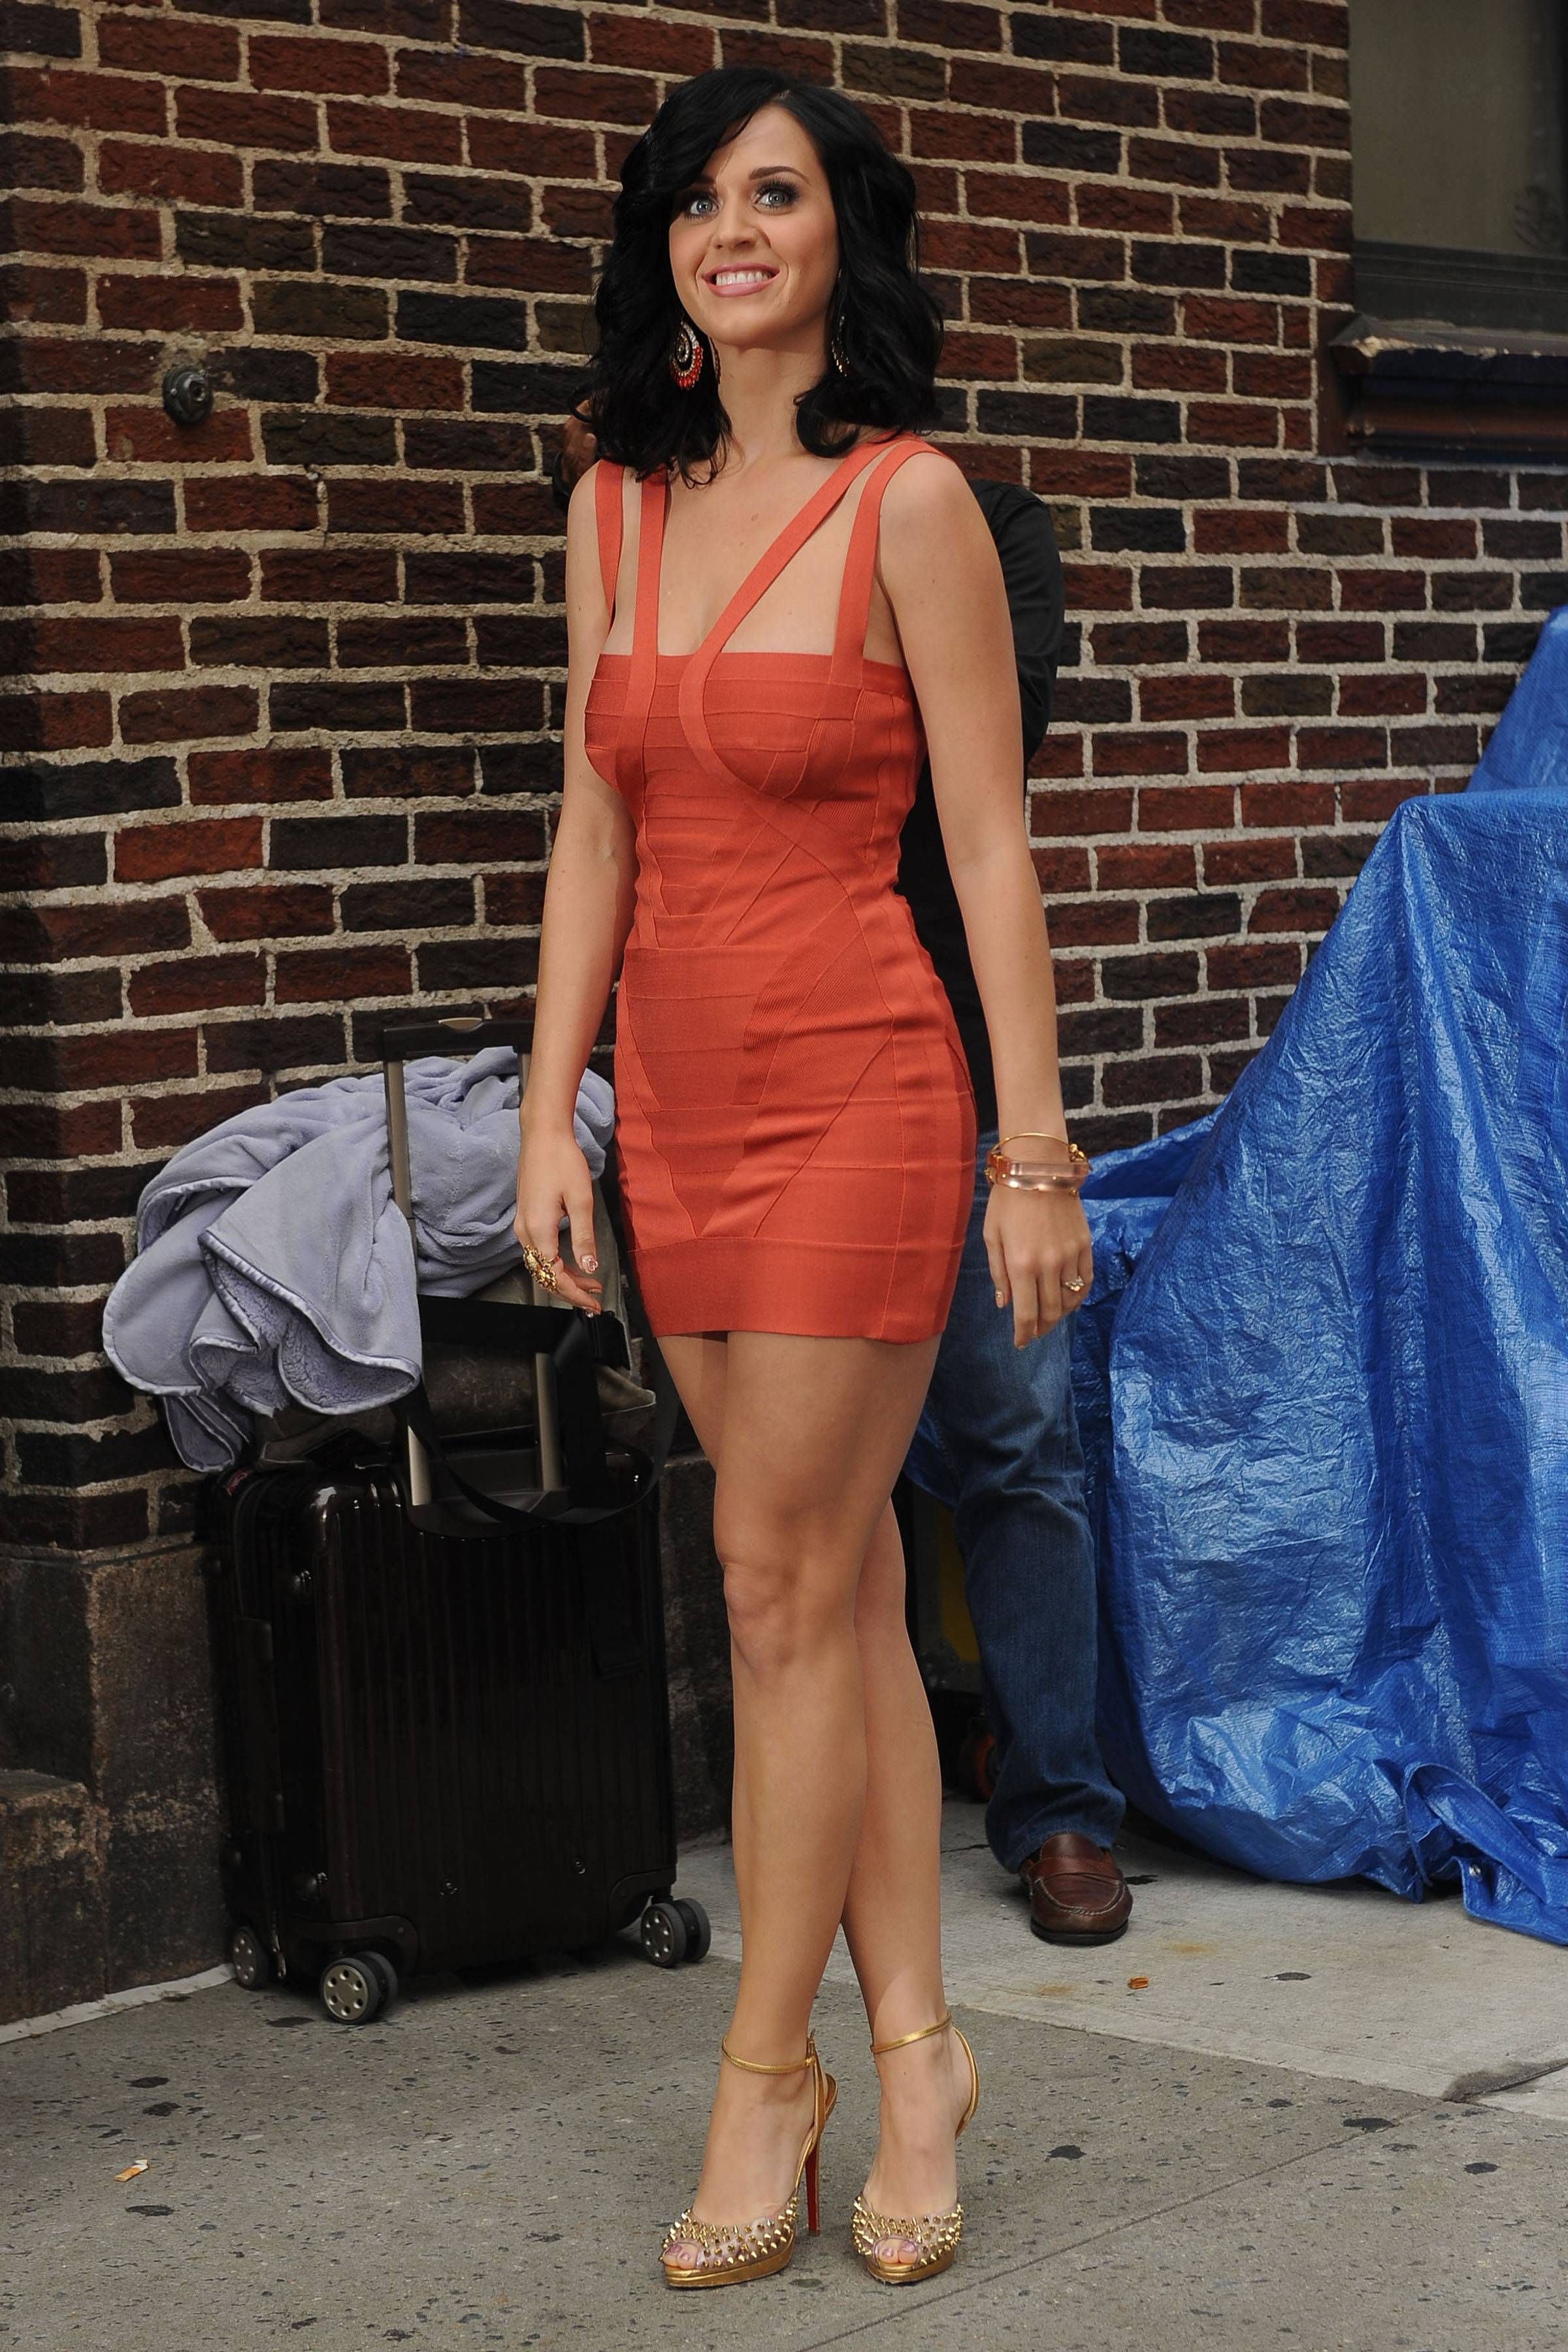 katy perry katy perry pinterest katy perry celebrity and swift